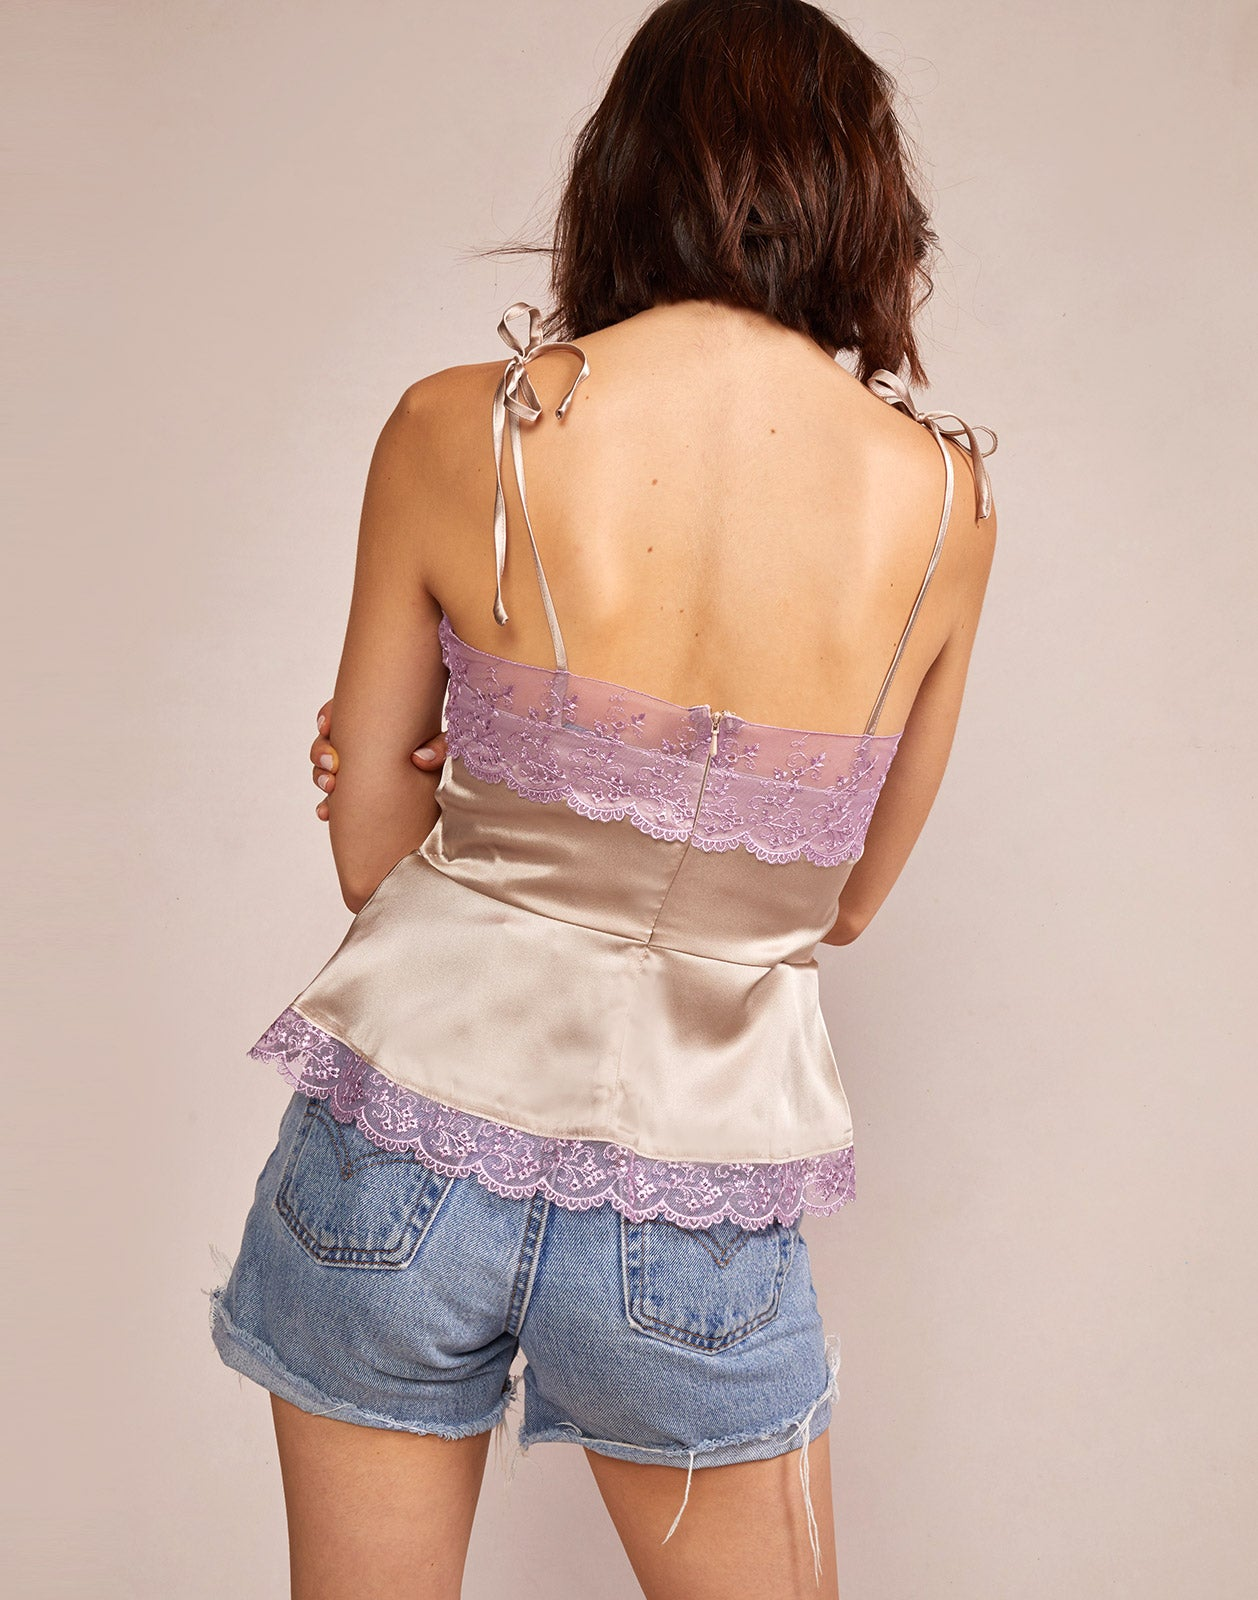 Alternate back view model wearing Mae Lace Trim Cami